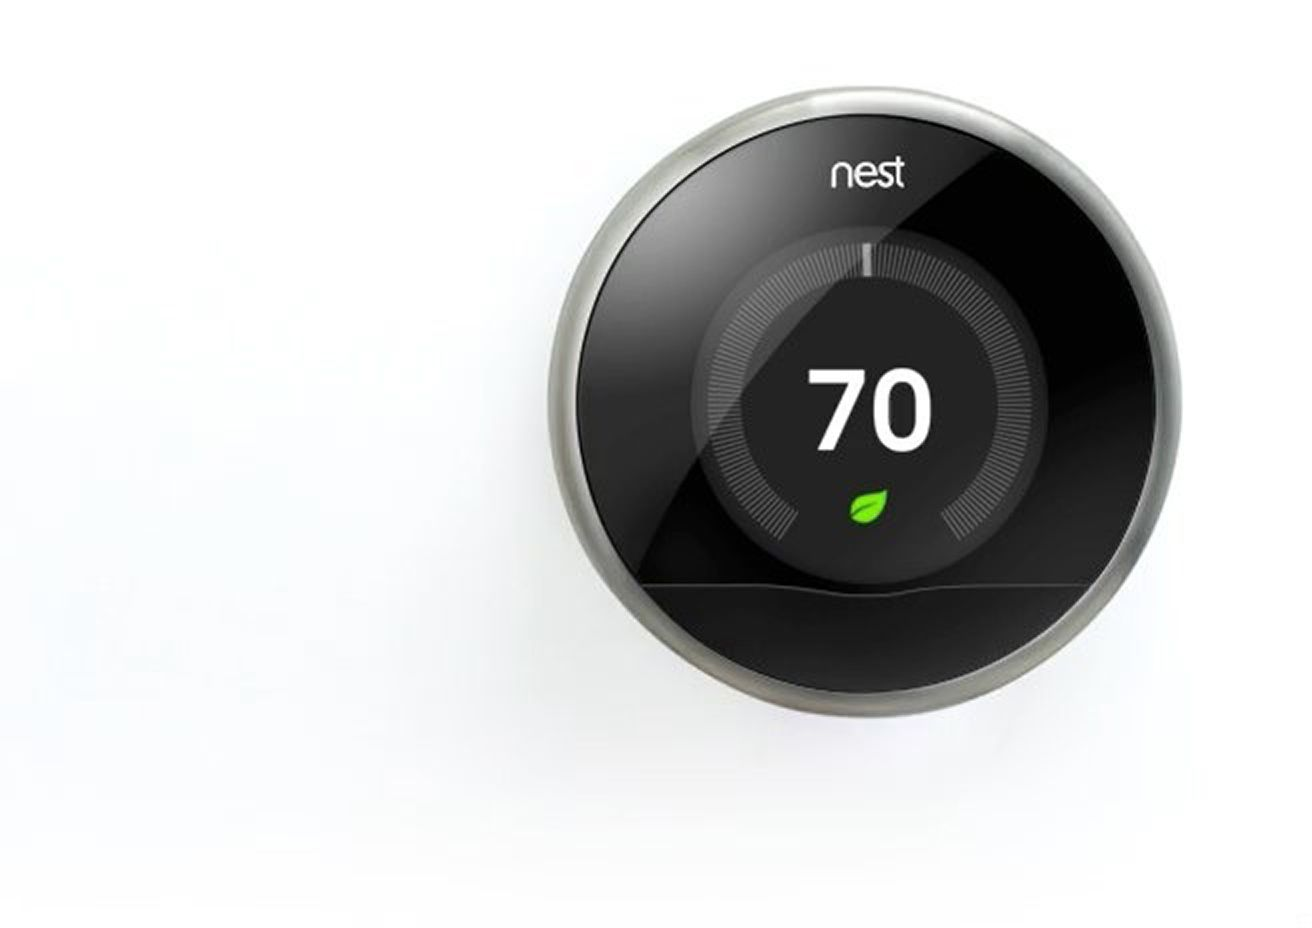 Just turn to heat or cool nest learning nest learning